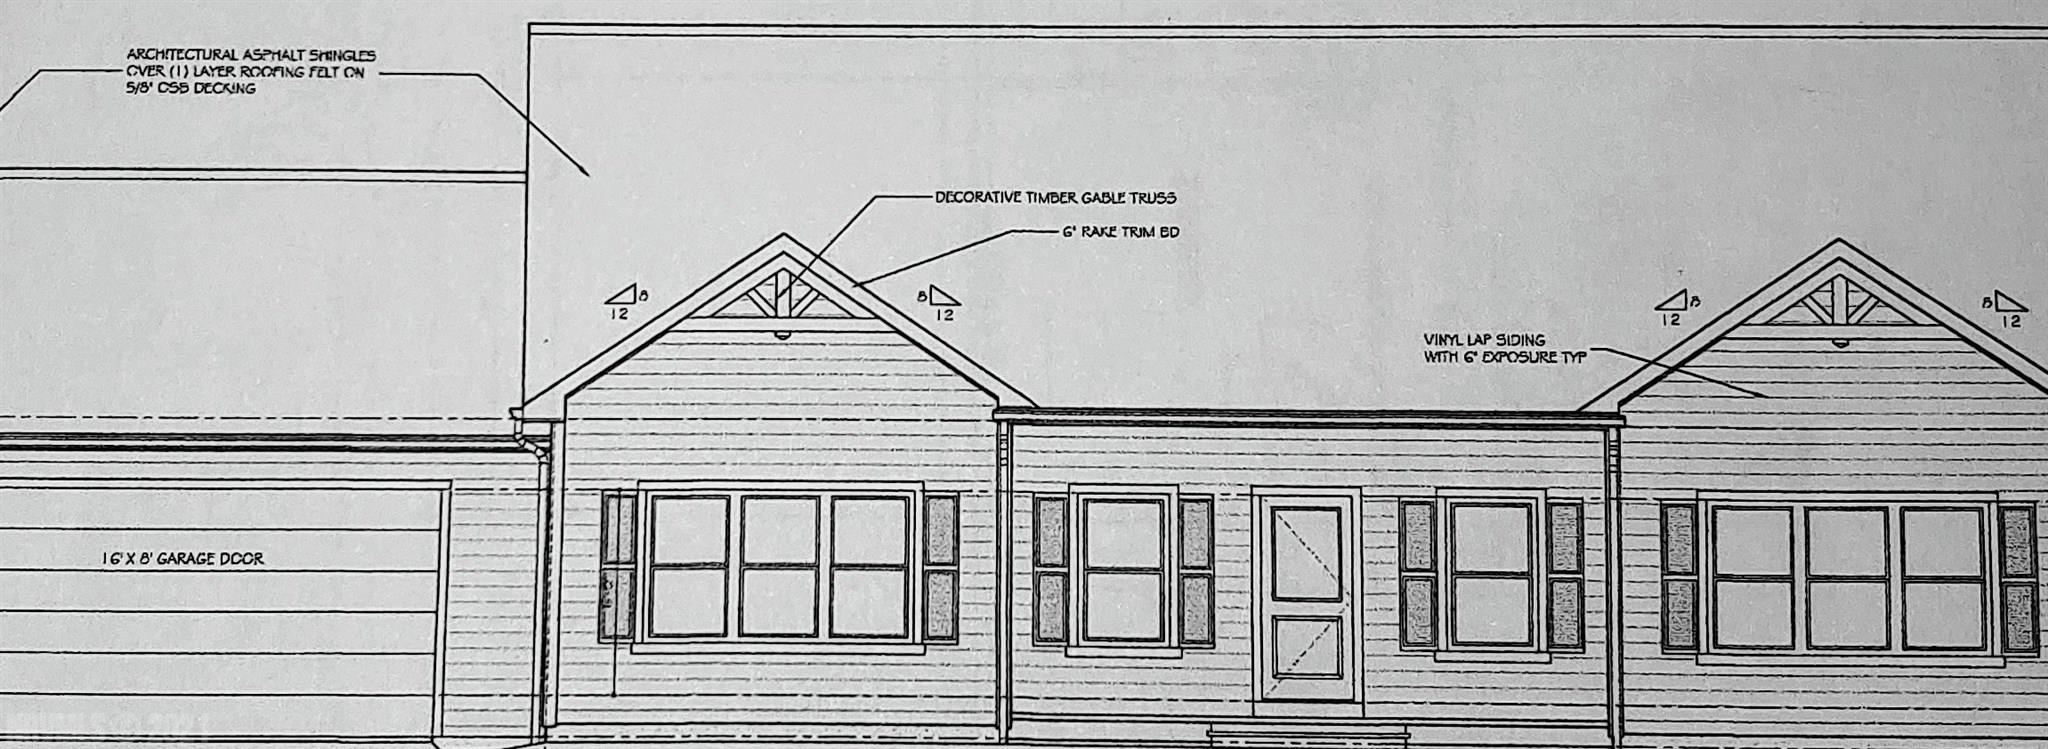 Riner VA New Construction!   Enjoy the comforts of nearly 1,700 sq ft of this main level ranch home with attached garage.   3 BDS / 2 BTHS offering 9' ceilings, 2x6 exterior walls, white oak hardwood flooring with open floor plan design.  All of this on nearly 2 acres of property! Private well and septic will serve the property.  Construction has already began, schedule your appointment!